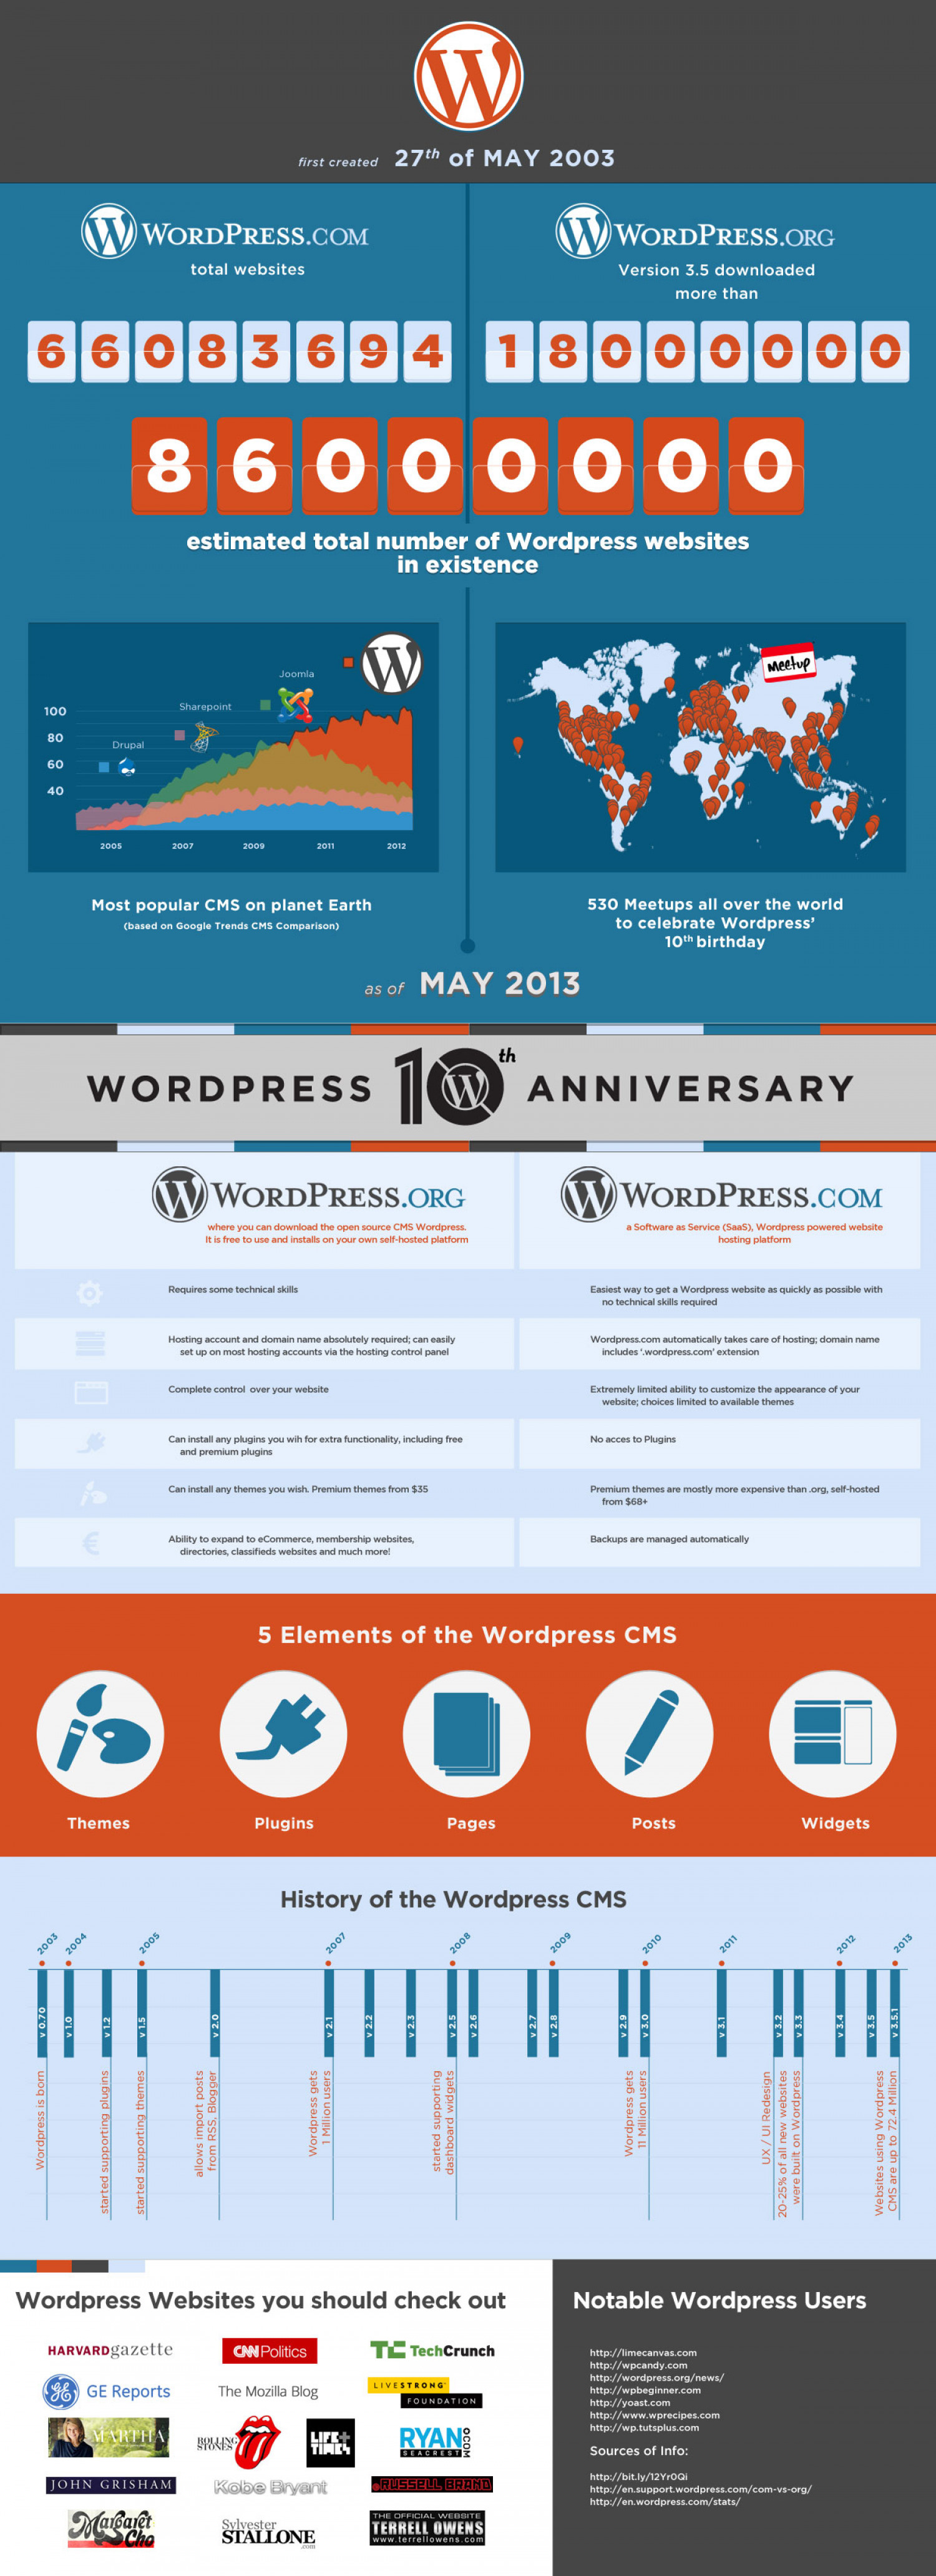 Wordpress 10th Anniversary Infographic